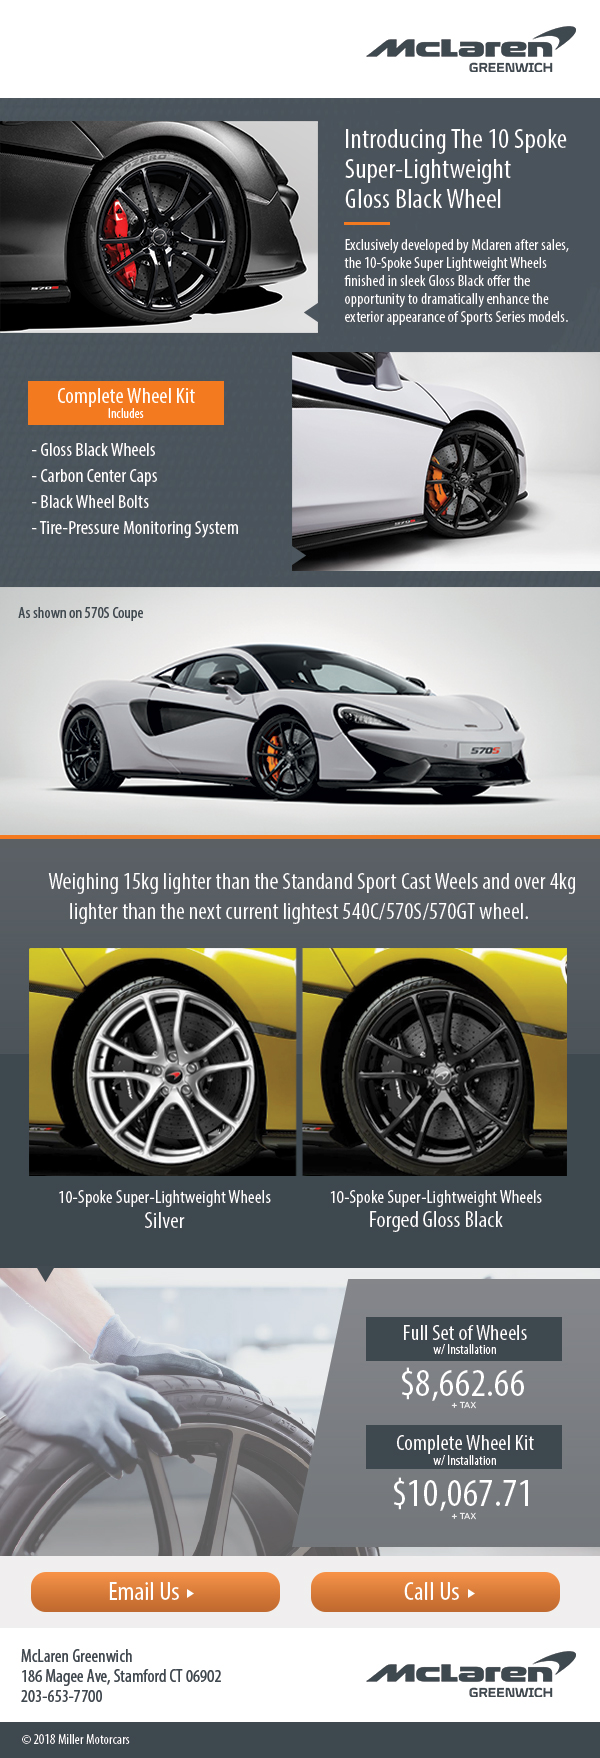 McLaren 10 Spoke Super-Lightweight Glass Black Wheel